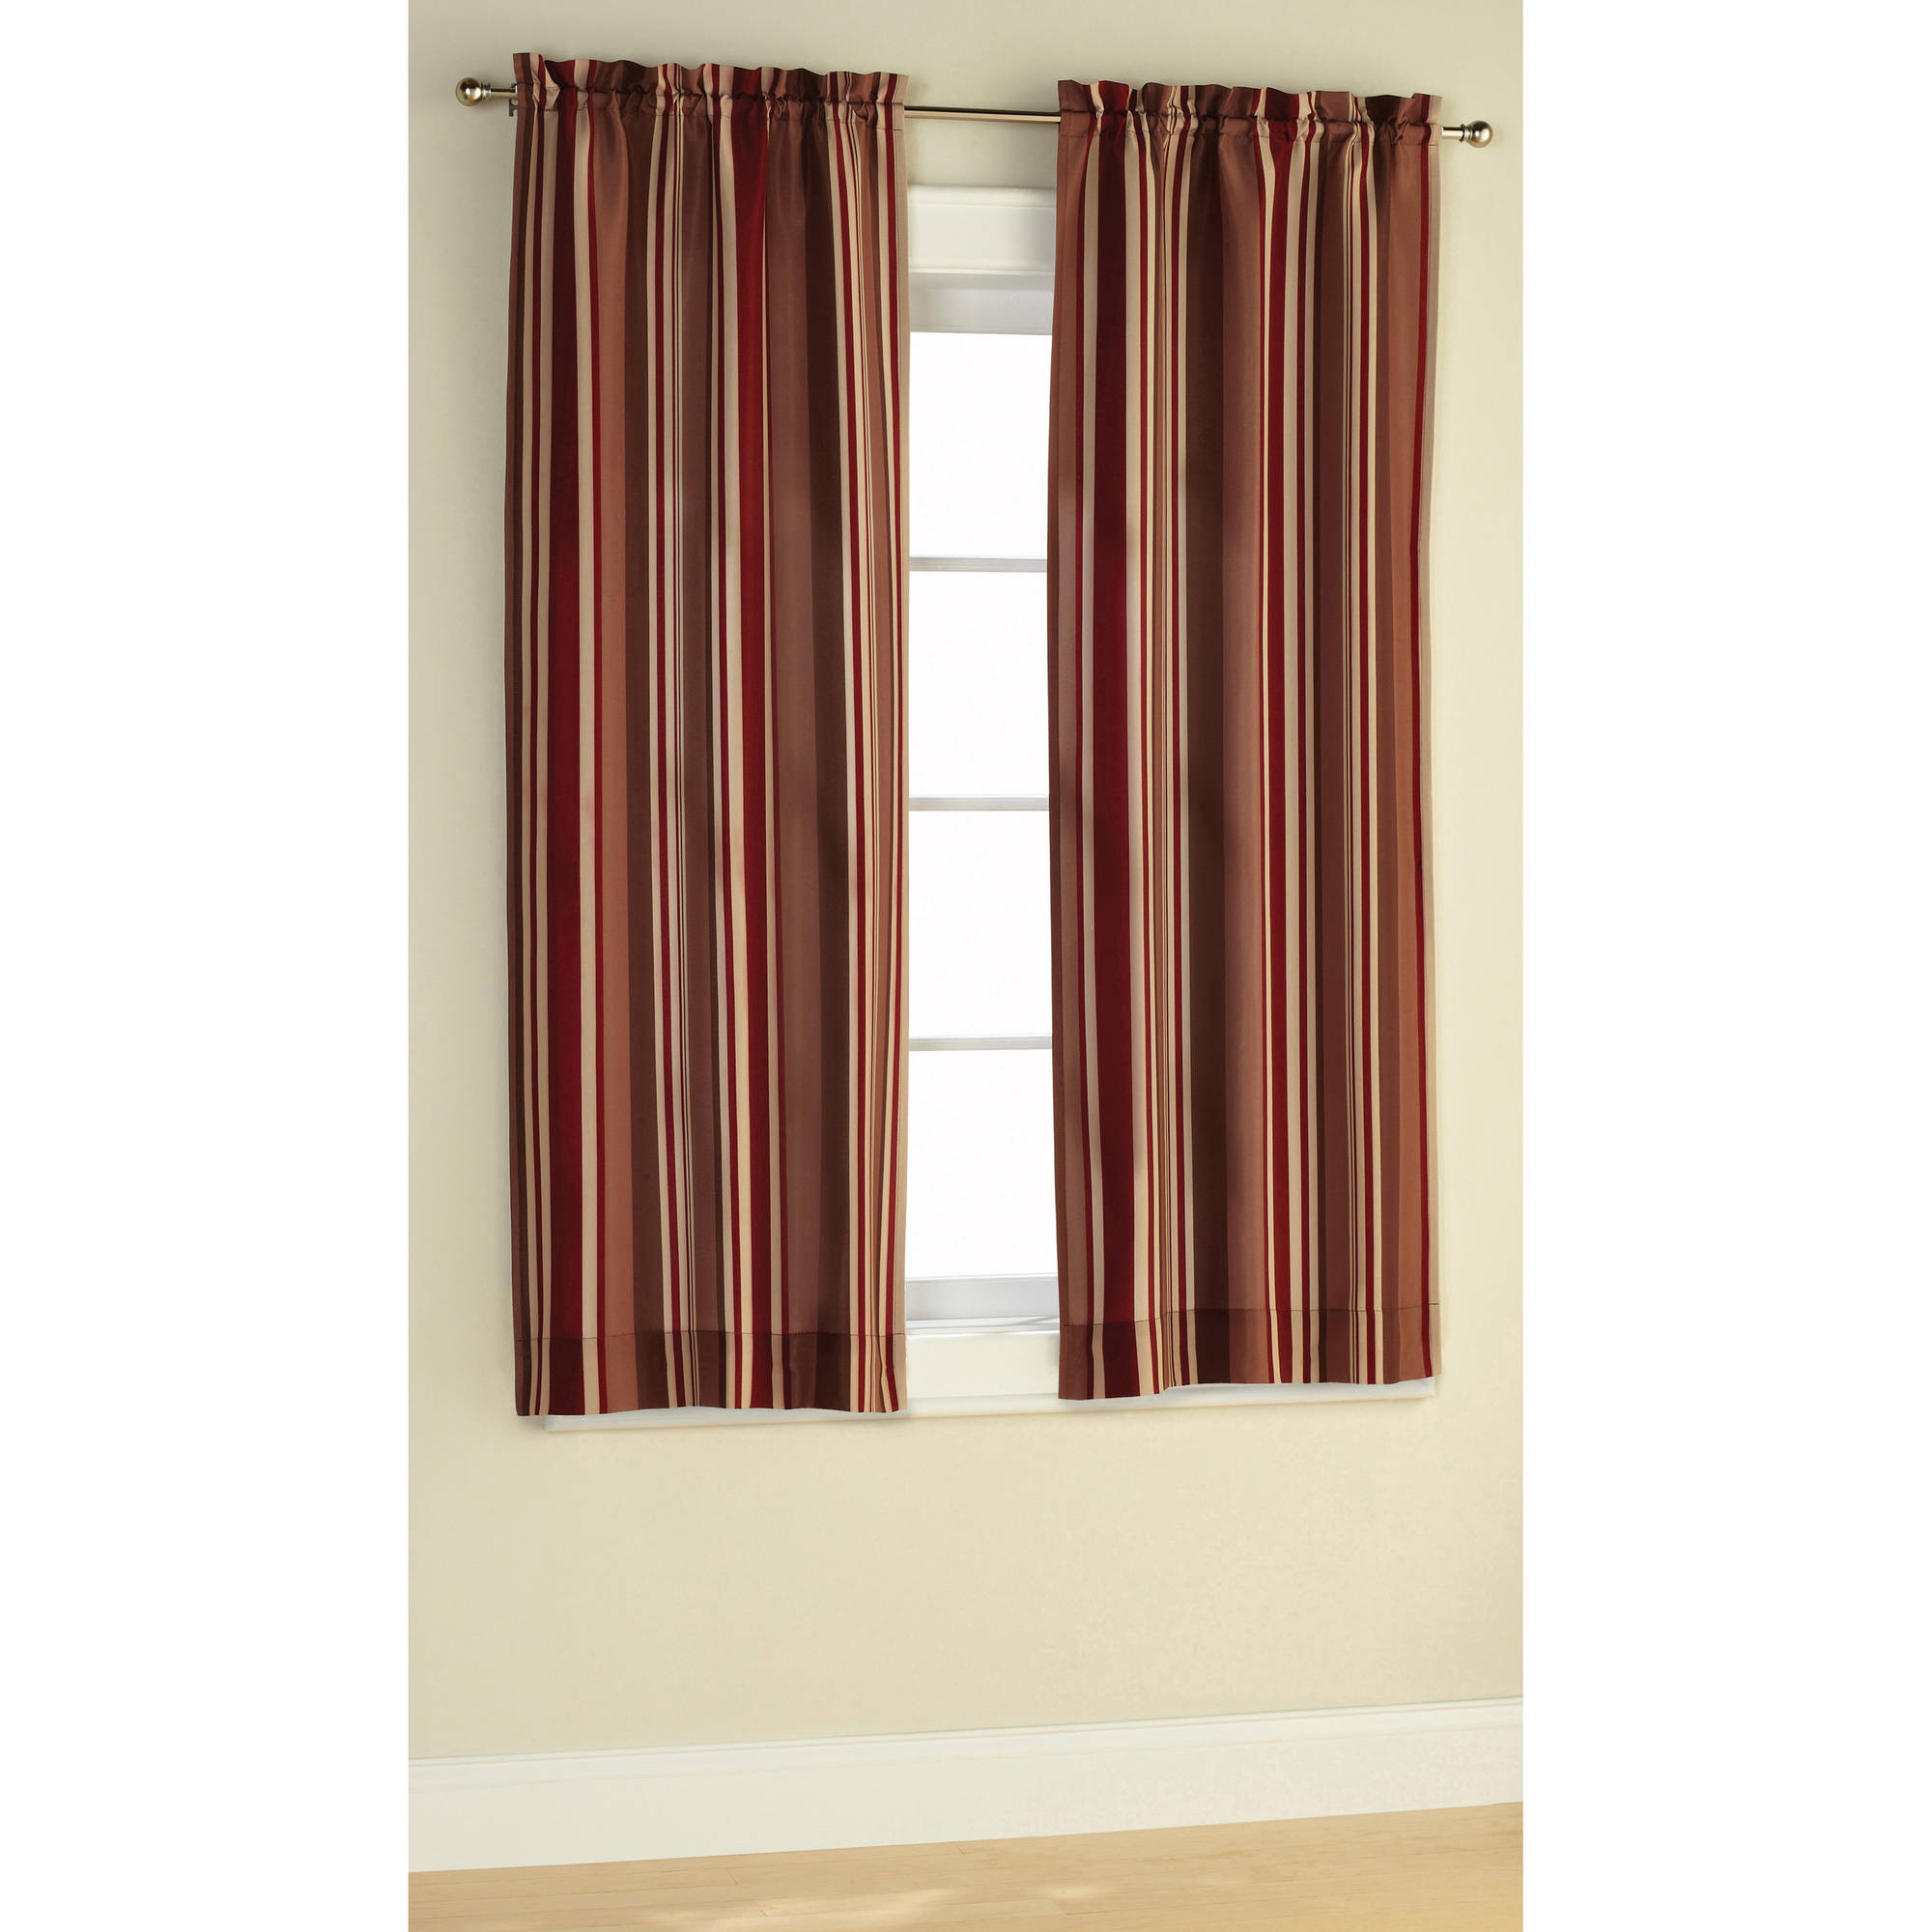 Curtain Sets - Coral colored curtain panels